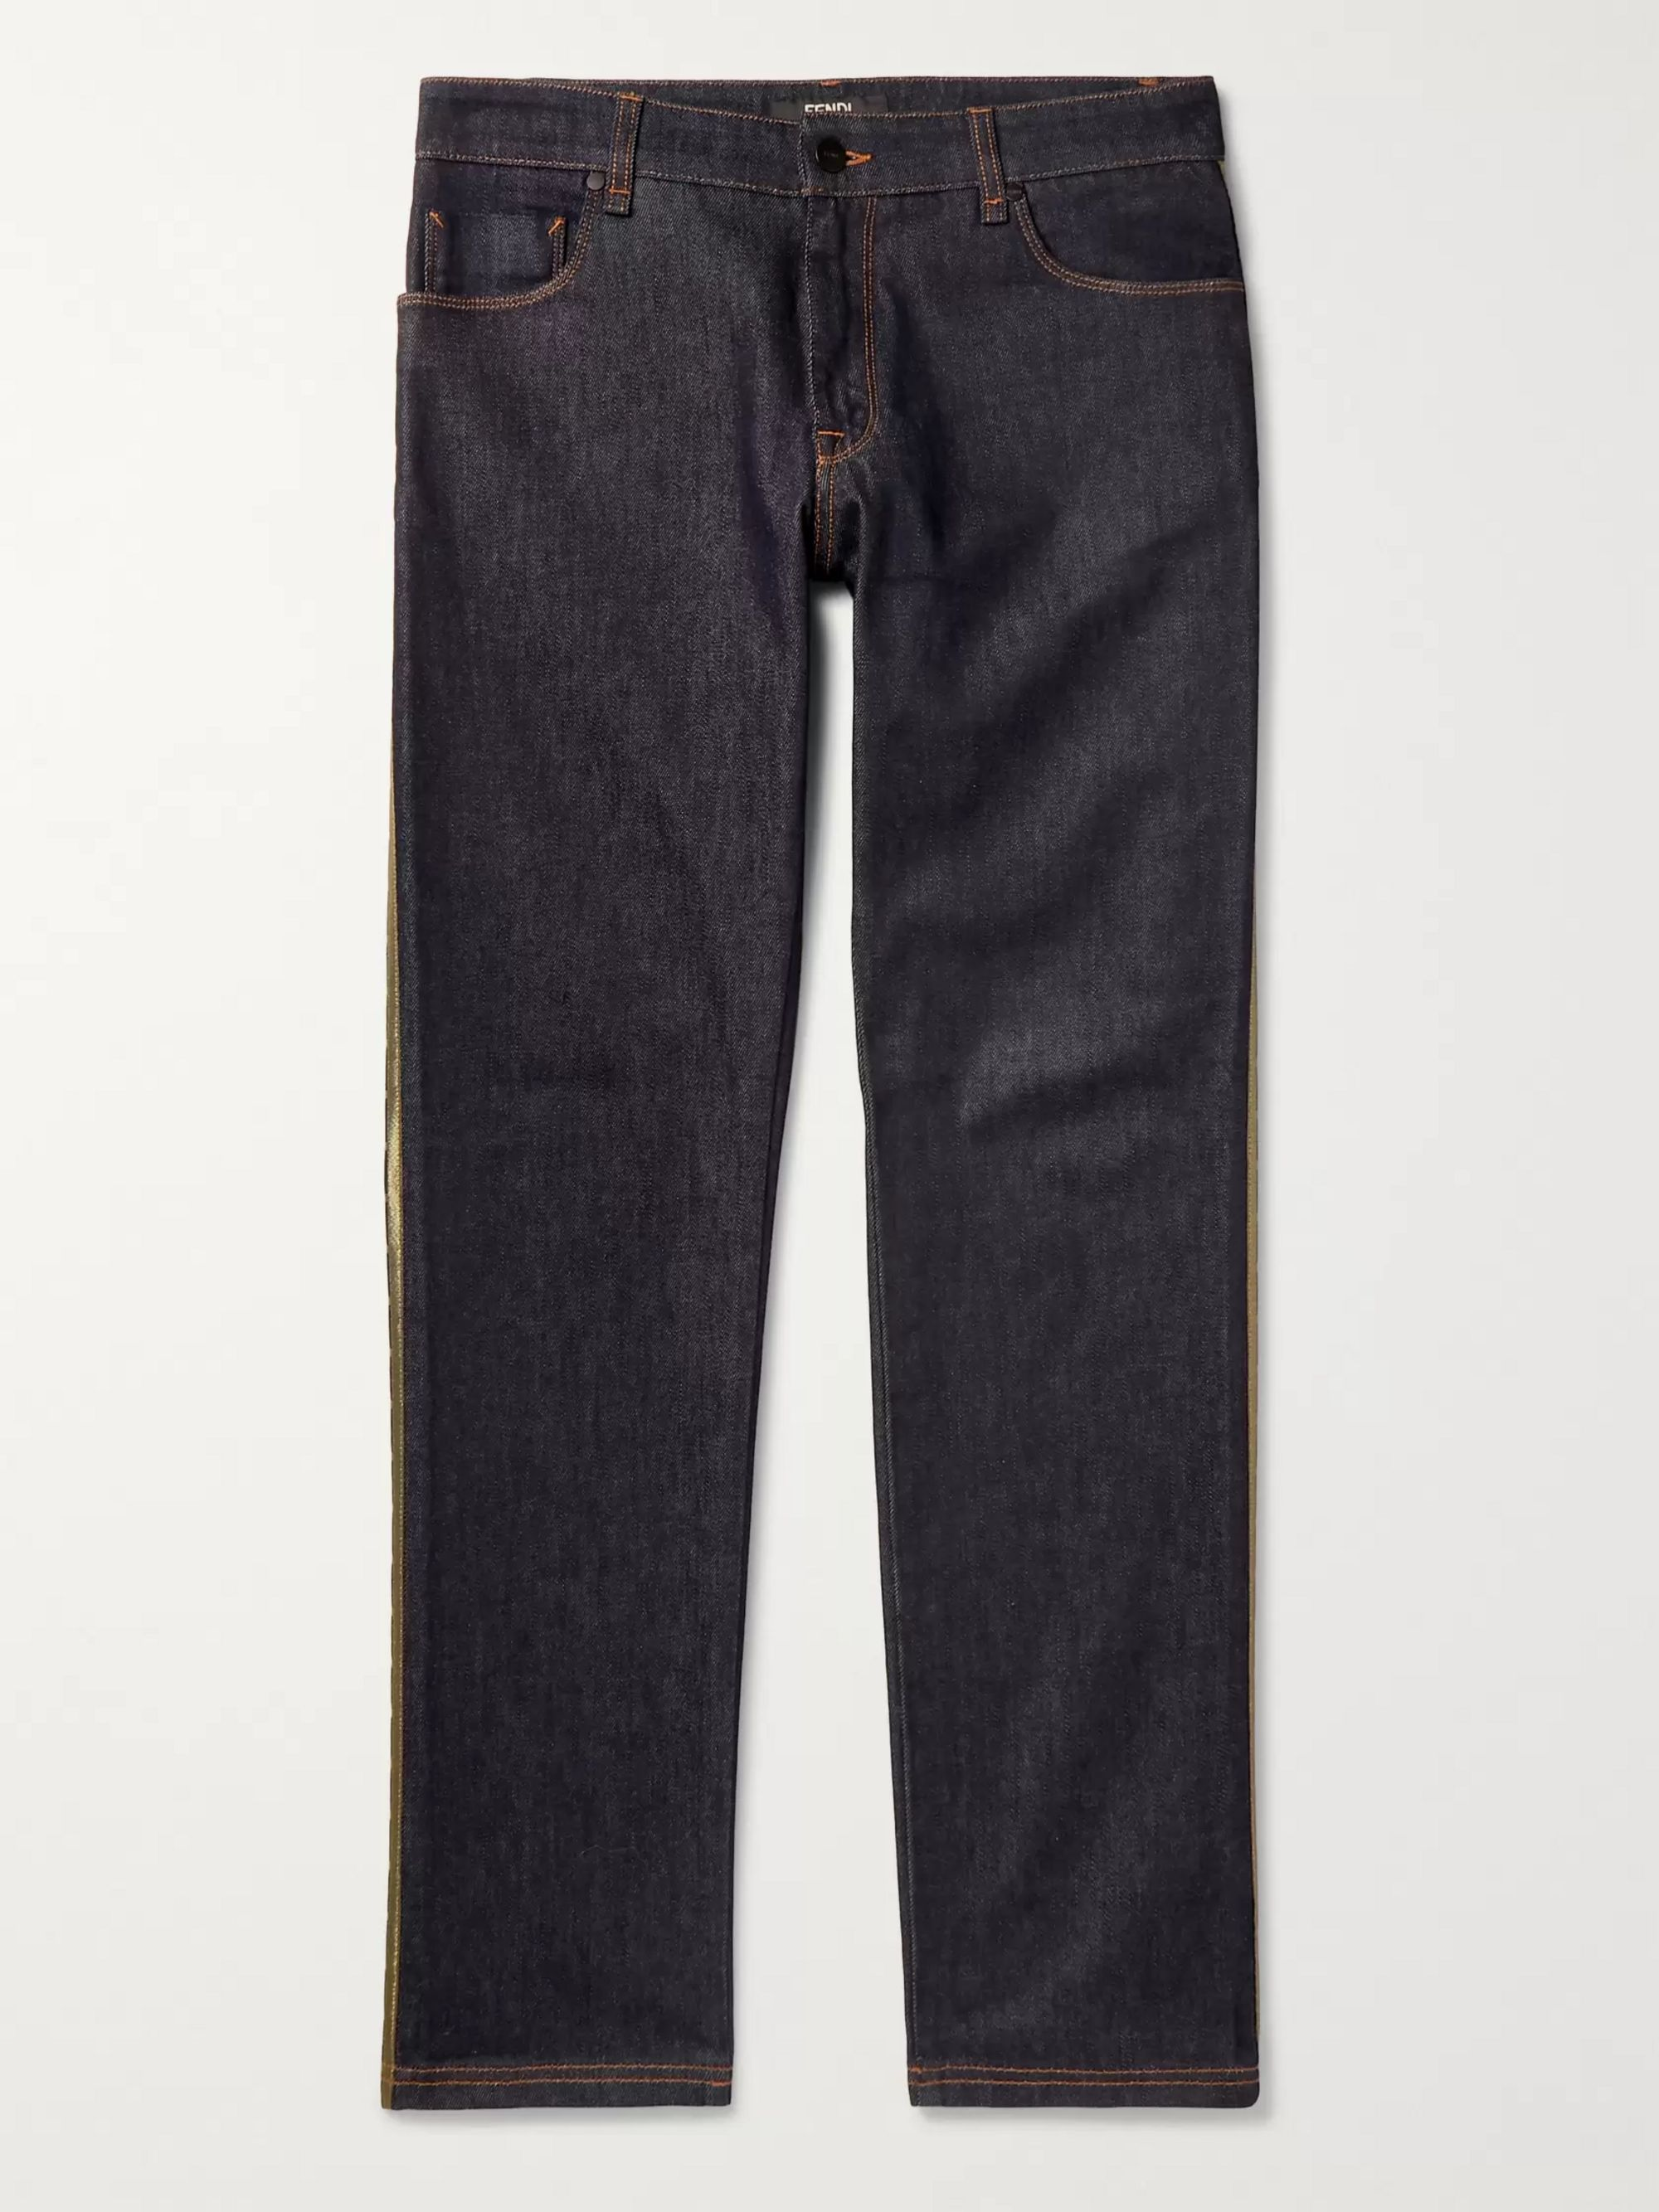 Fendi Slim-Fit Logo-Trimmed Denim Jeans